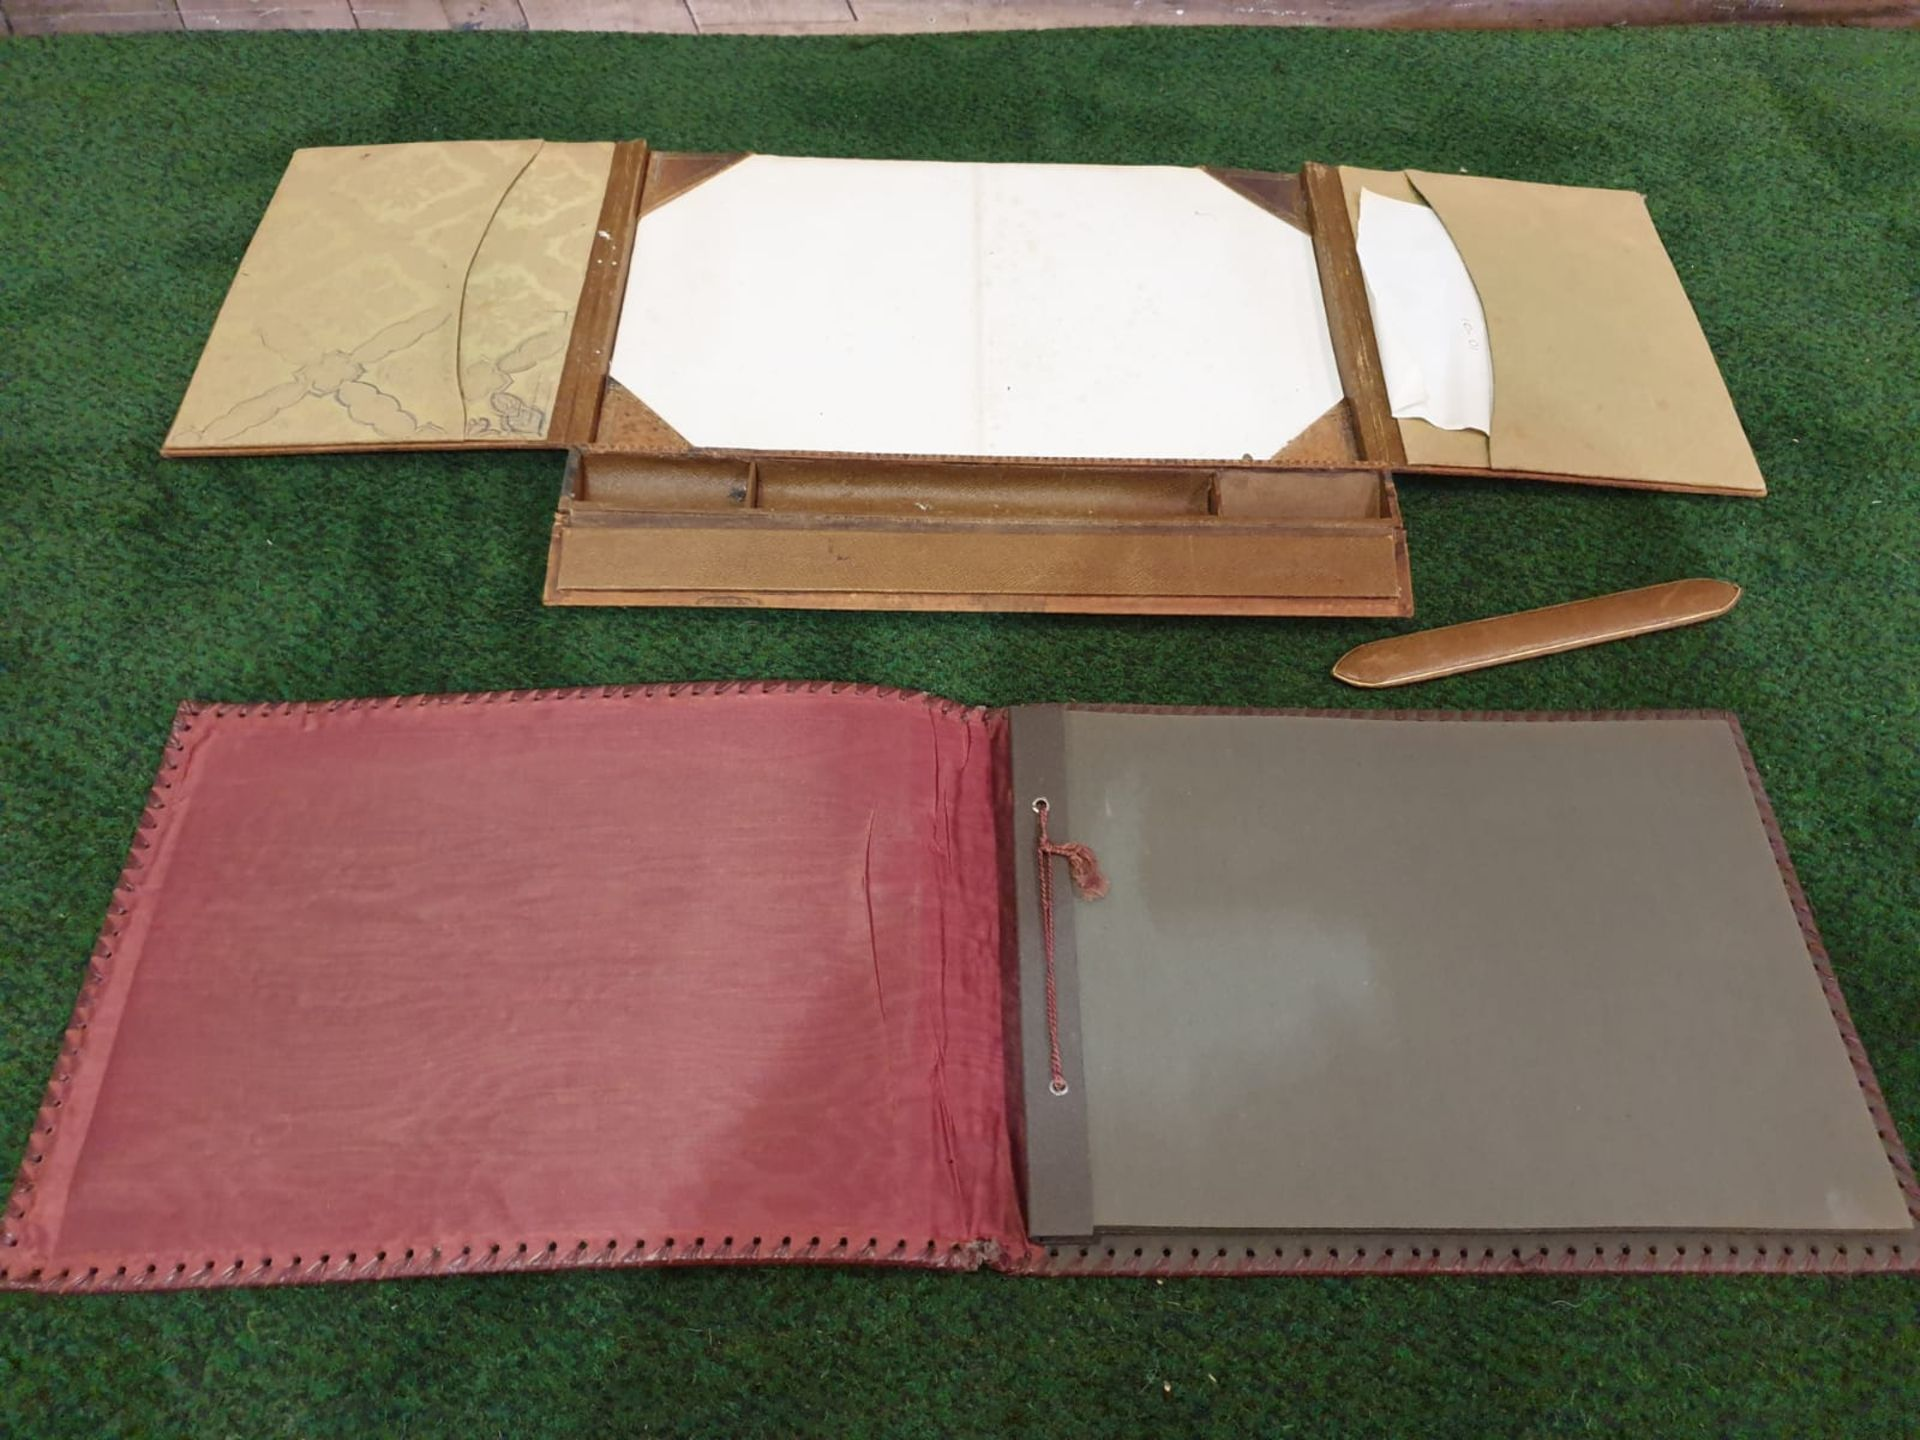 A vintage red leather with picture inset photo album and a tan light brown leather writing pad - Image 3 of 3